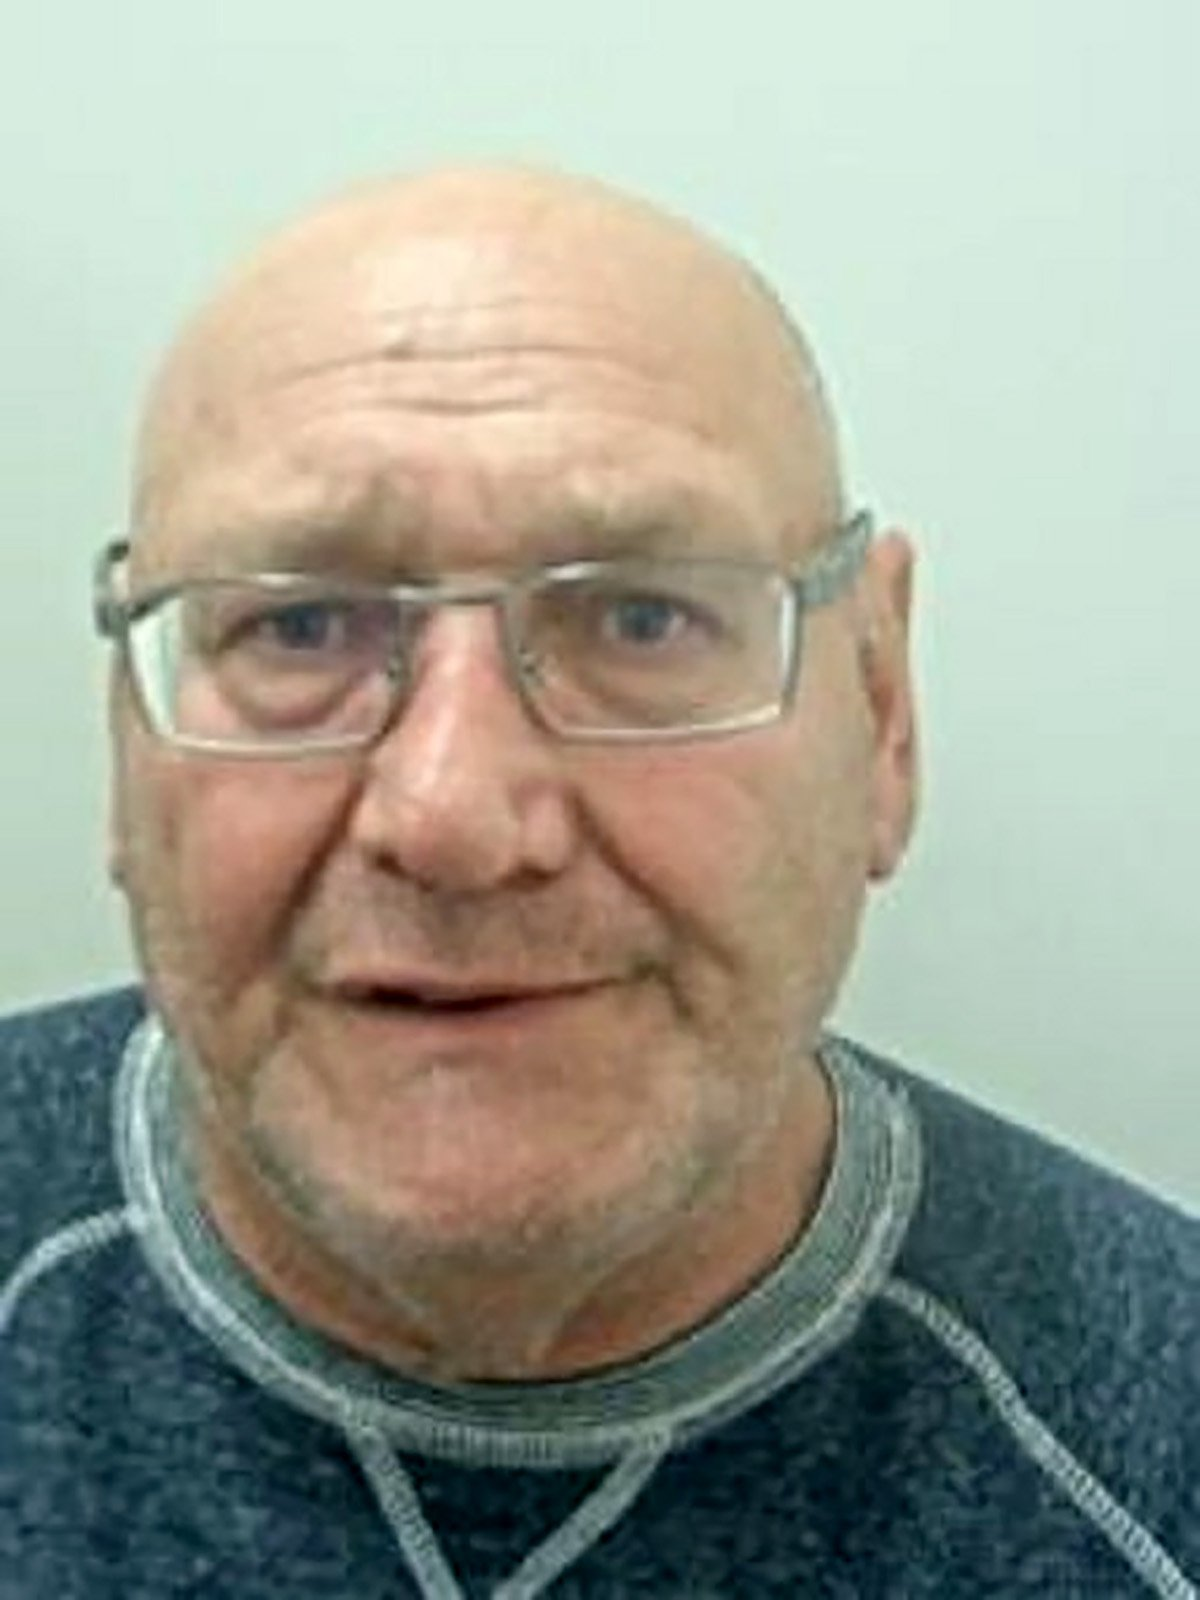 Titus Jelea who has been jailed. See SWNS story SWLEketchup; A distraction thief who targeted OAPs to steal from their handbags was caught out when a keen-eyed bystander convinced him to pose for a selfie. Titus Jalea, 64, squirted a pensioner with ketchup and told him he was bleeding, in order to distract him and steal his bank book. He also followed an 89-year-old woman home from the bank and stole ?500 from her on her own doorstep, and stole ?100 from a 92-year-old woman as she did her weekly shop. In May and June this year Jalea stole from eight pensioners in Blackburn and Accrington, following them from the bank and dipping into their handbags.